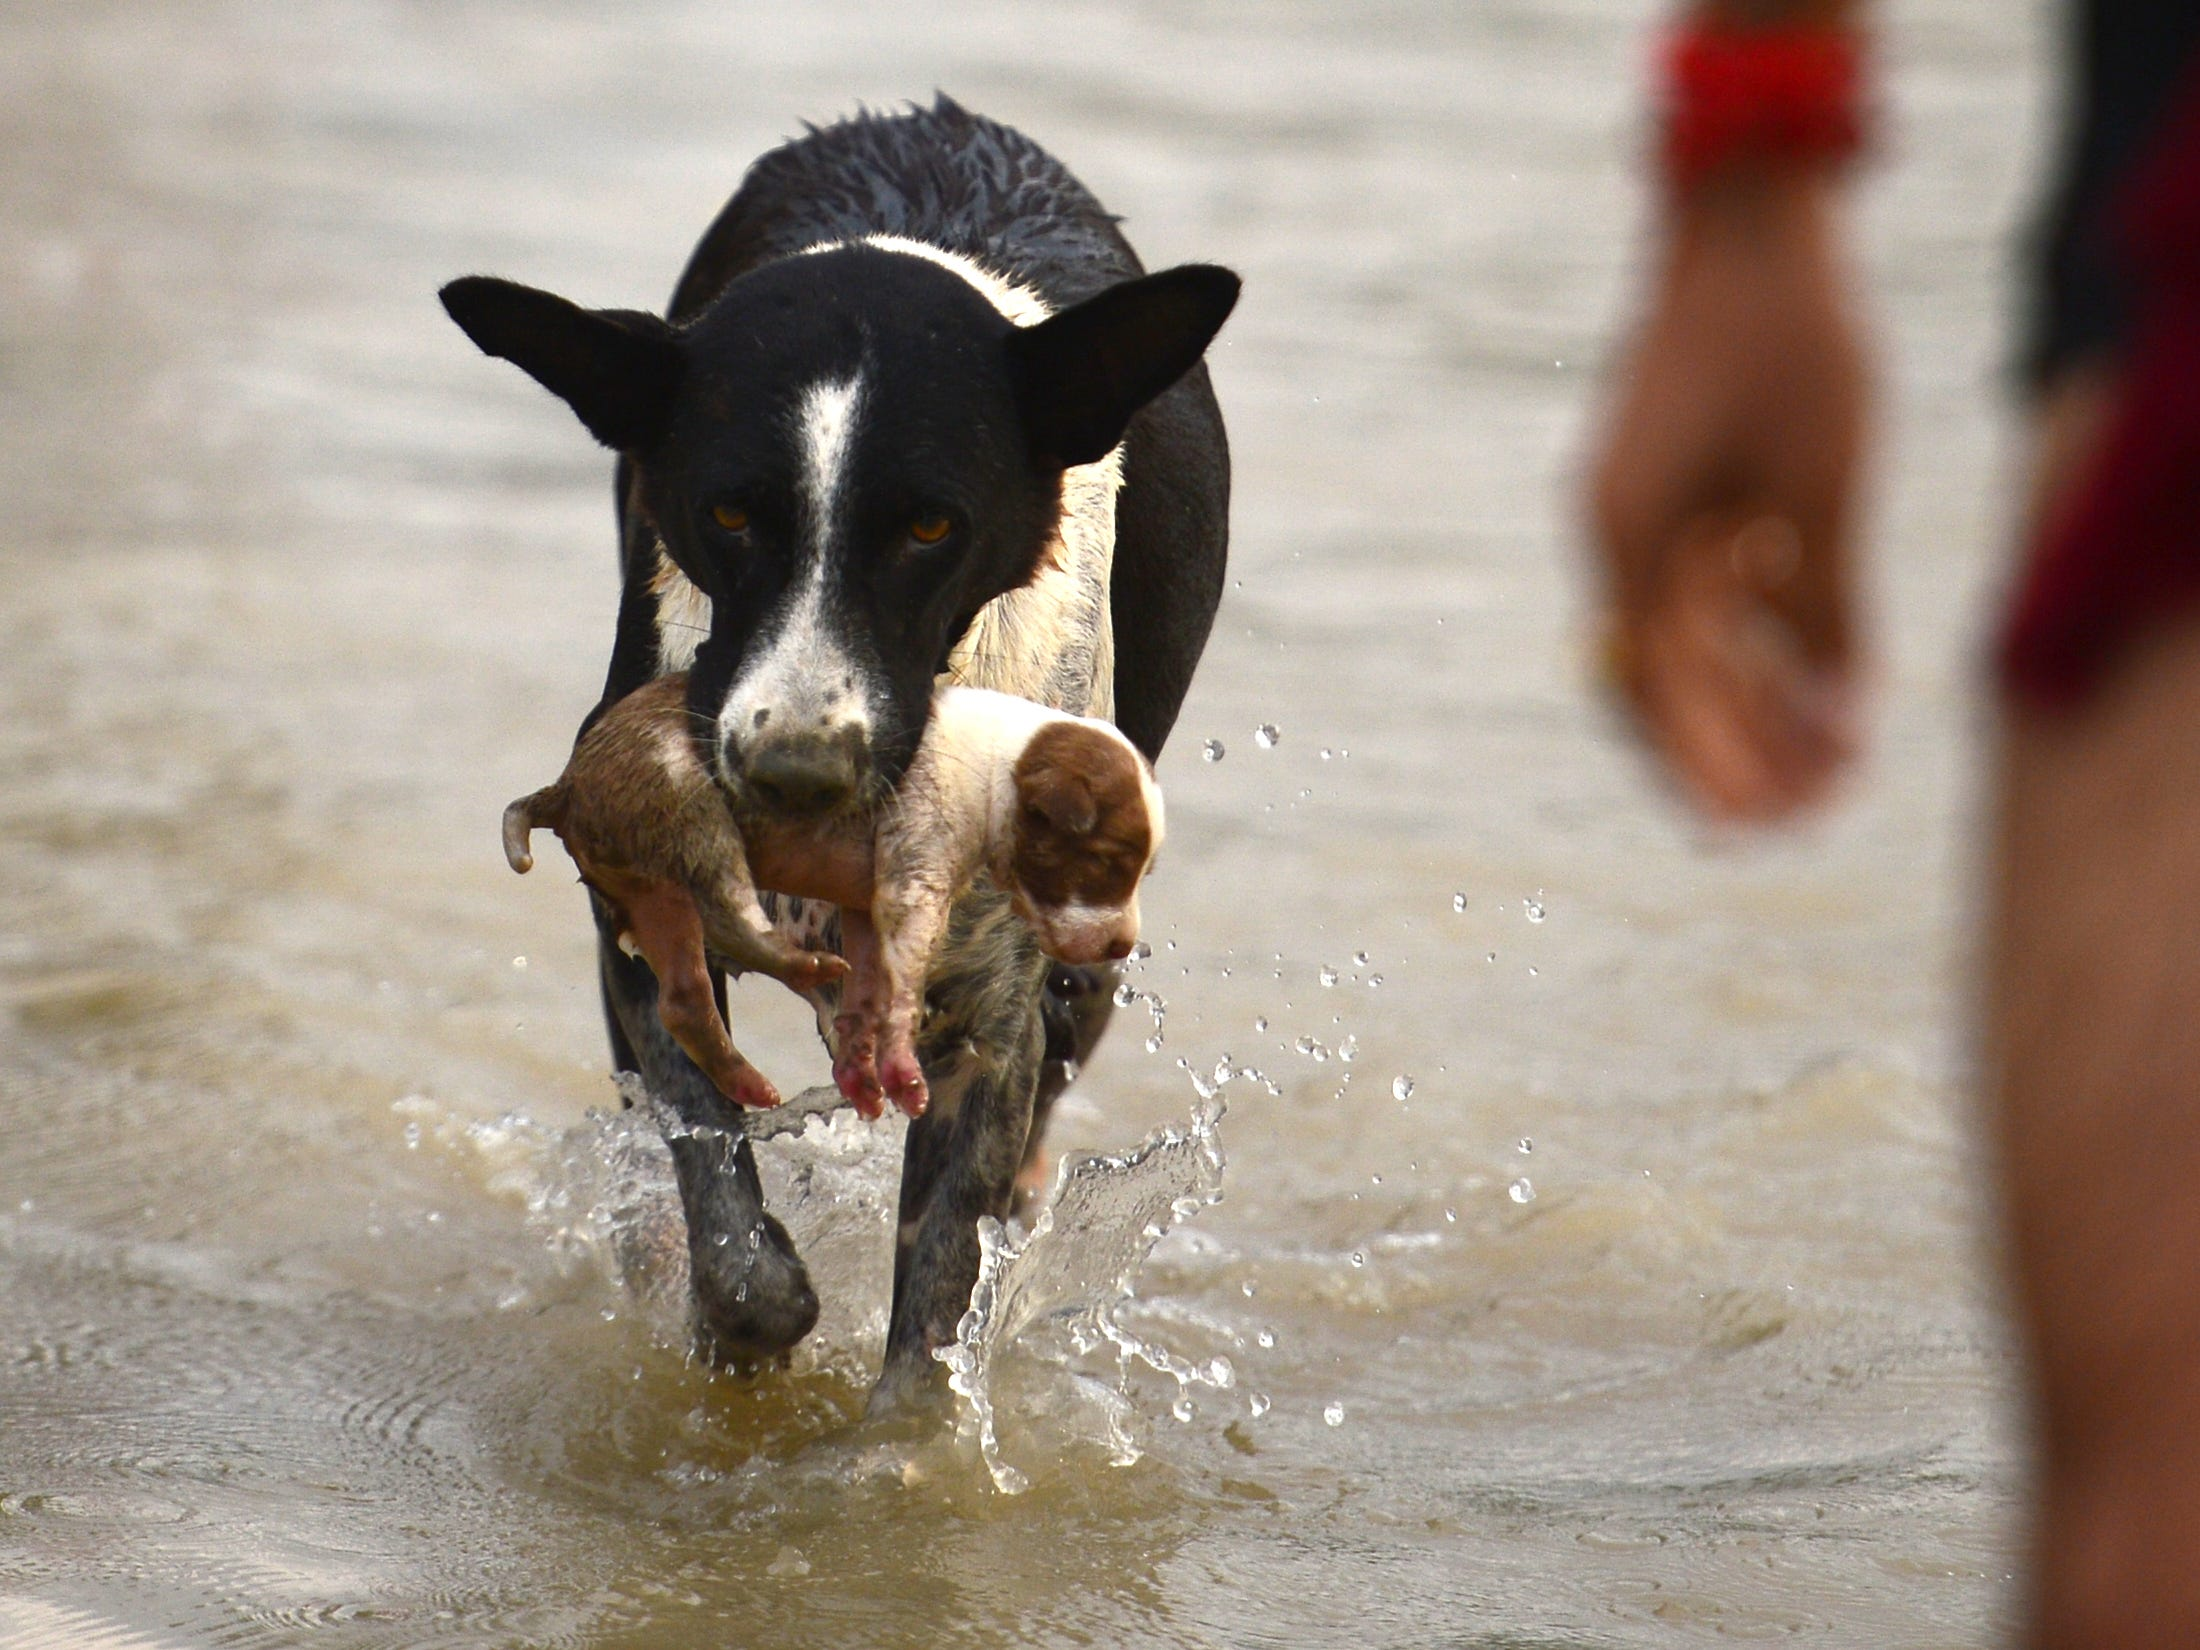 A dog transfers a puppy to a drier place at Sangam area in Allahabad on September 3, 2018, as water levels of the Ganges and Yamuna rivers increase following monsoon rains.